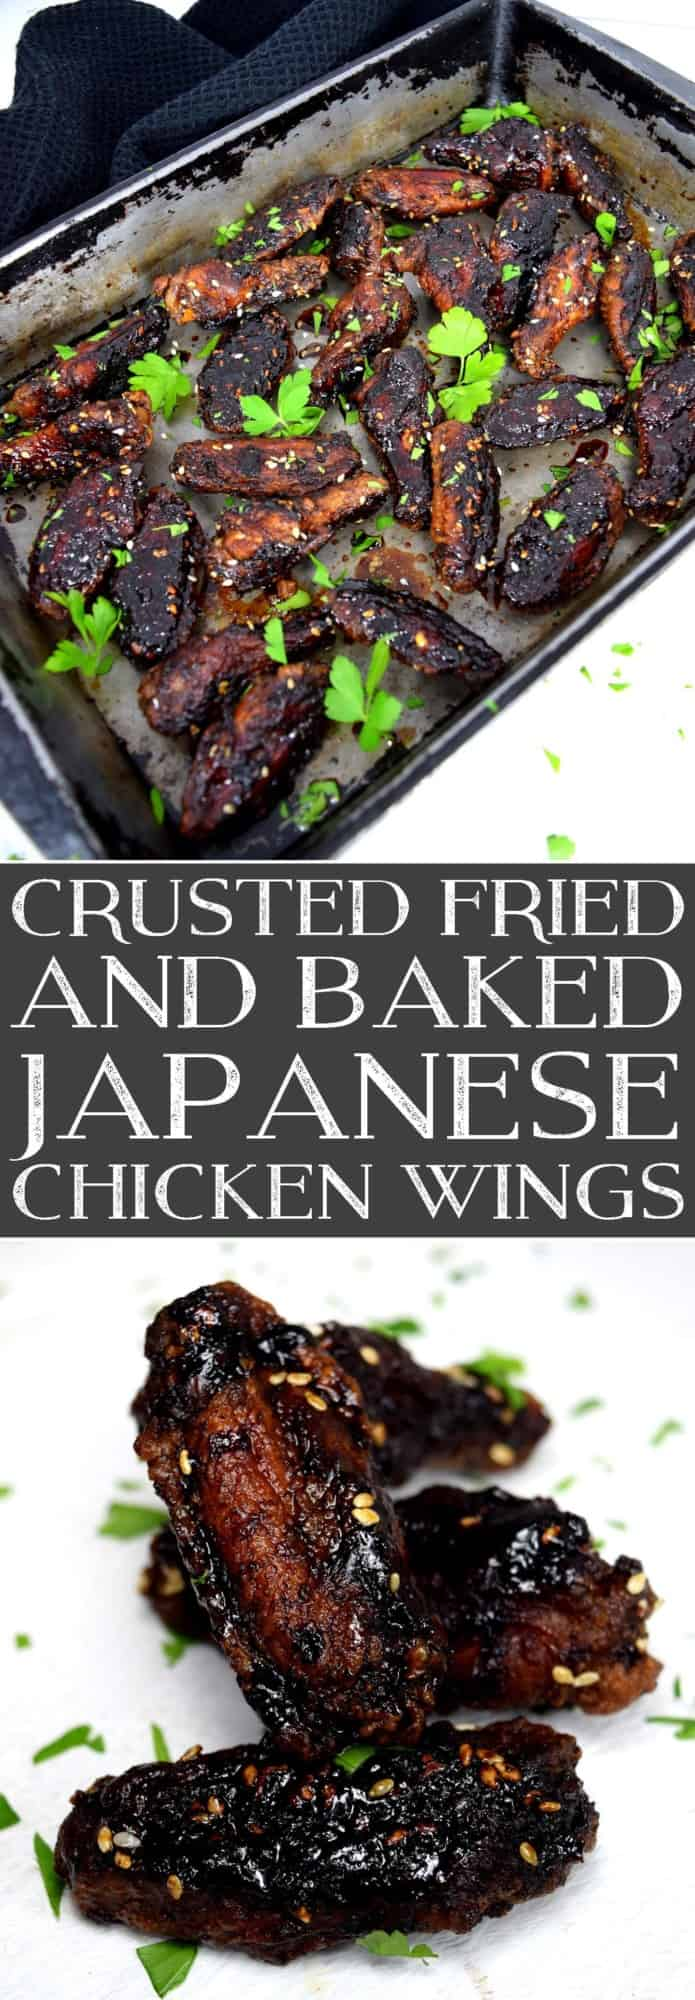 Crusted Fried & Baked Japanese Chicken Wings 2